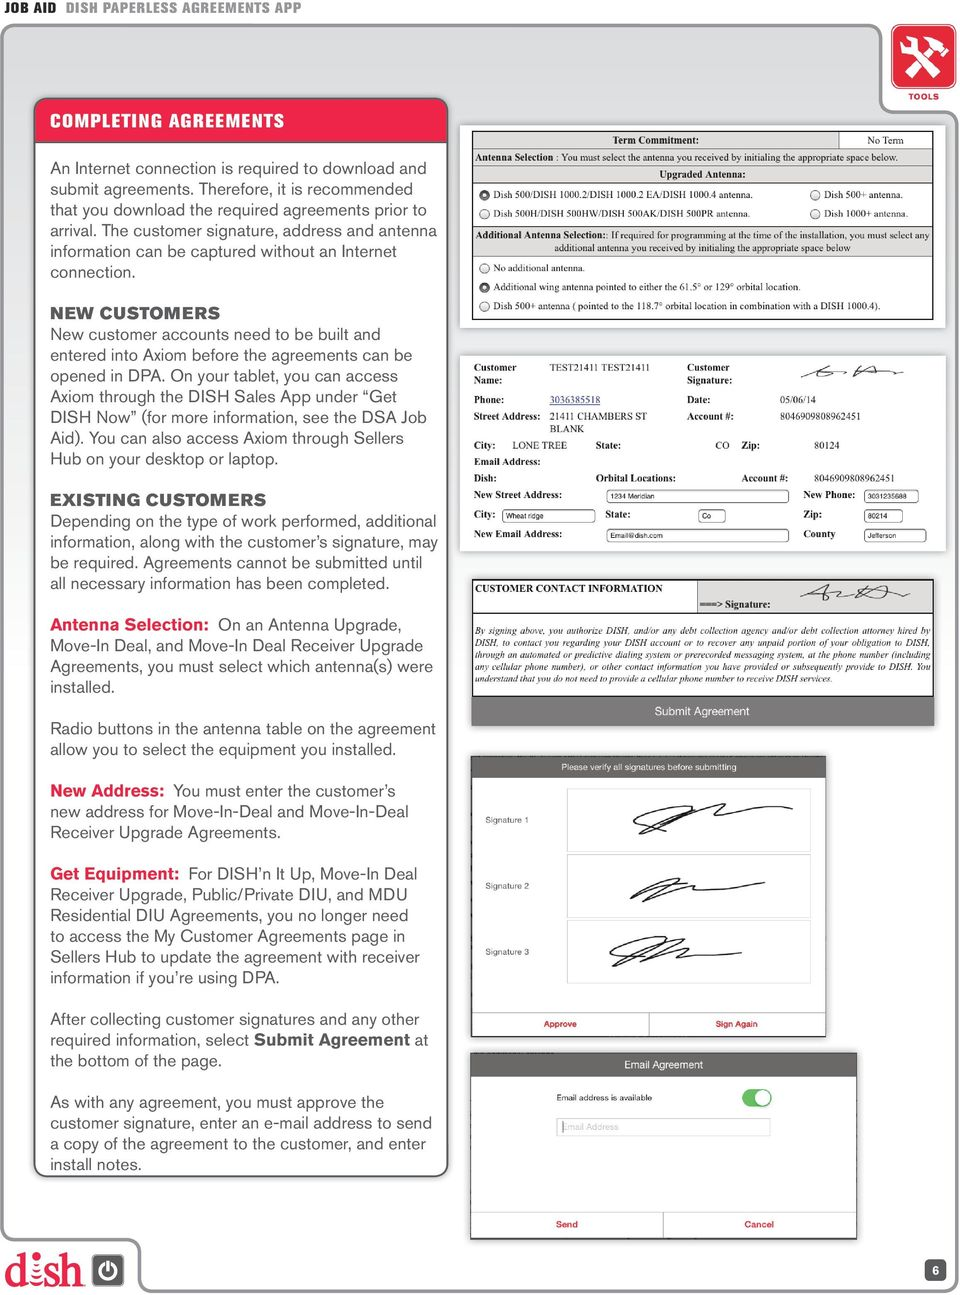 Dish Paperless Agreements App Pdf